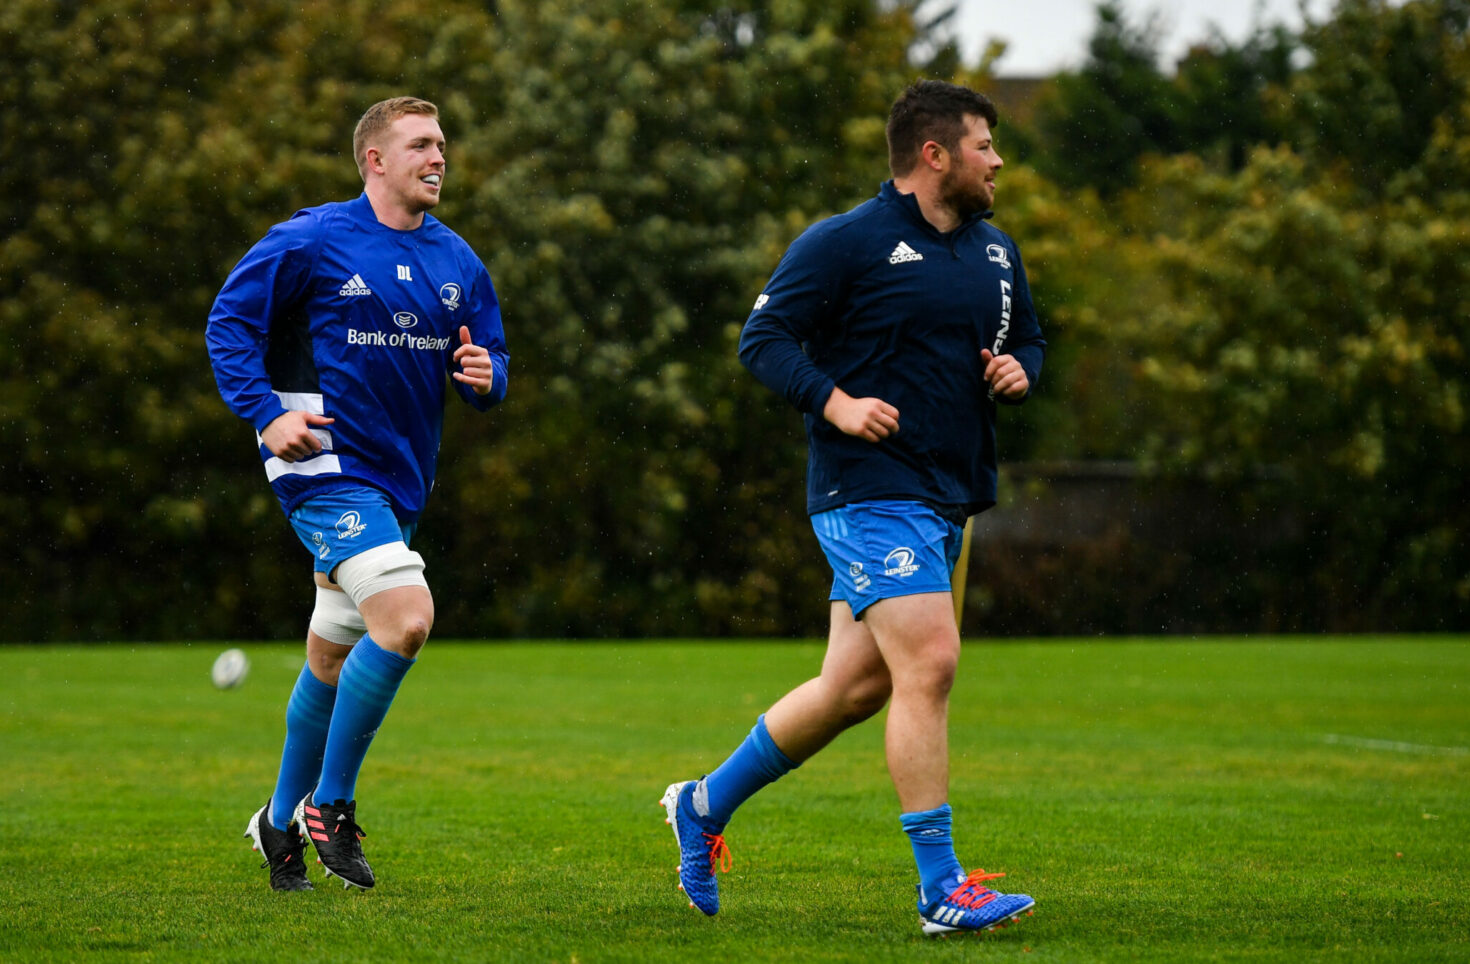 Four debuts and Leavy back in the mix for Zebre